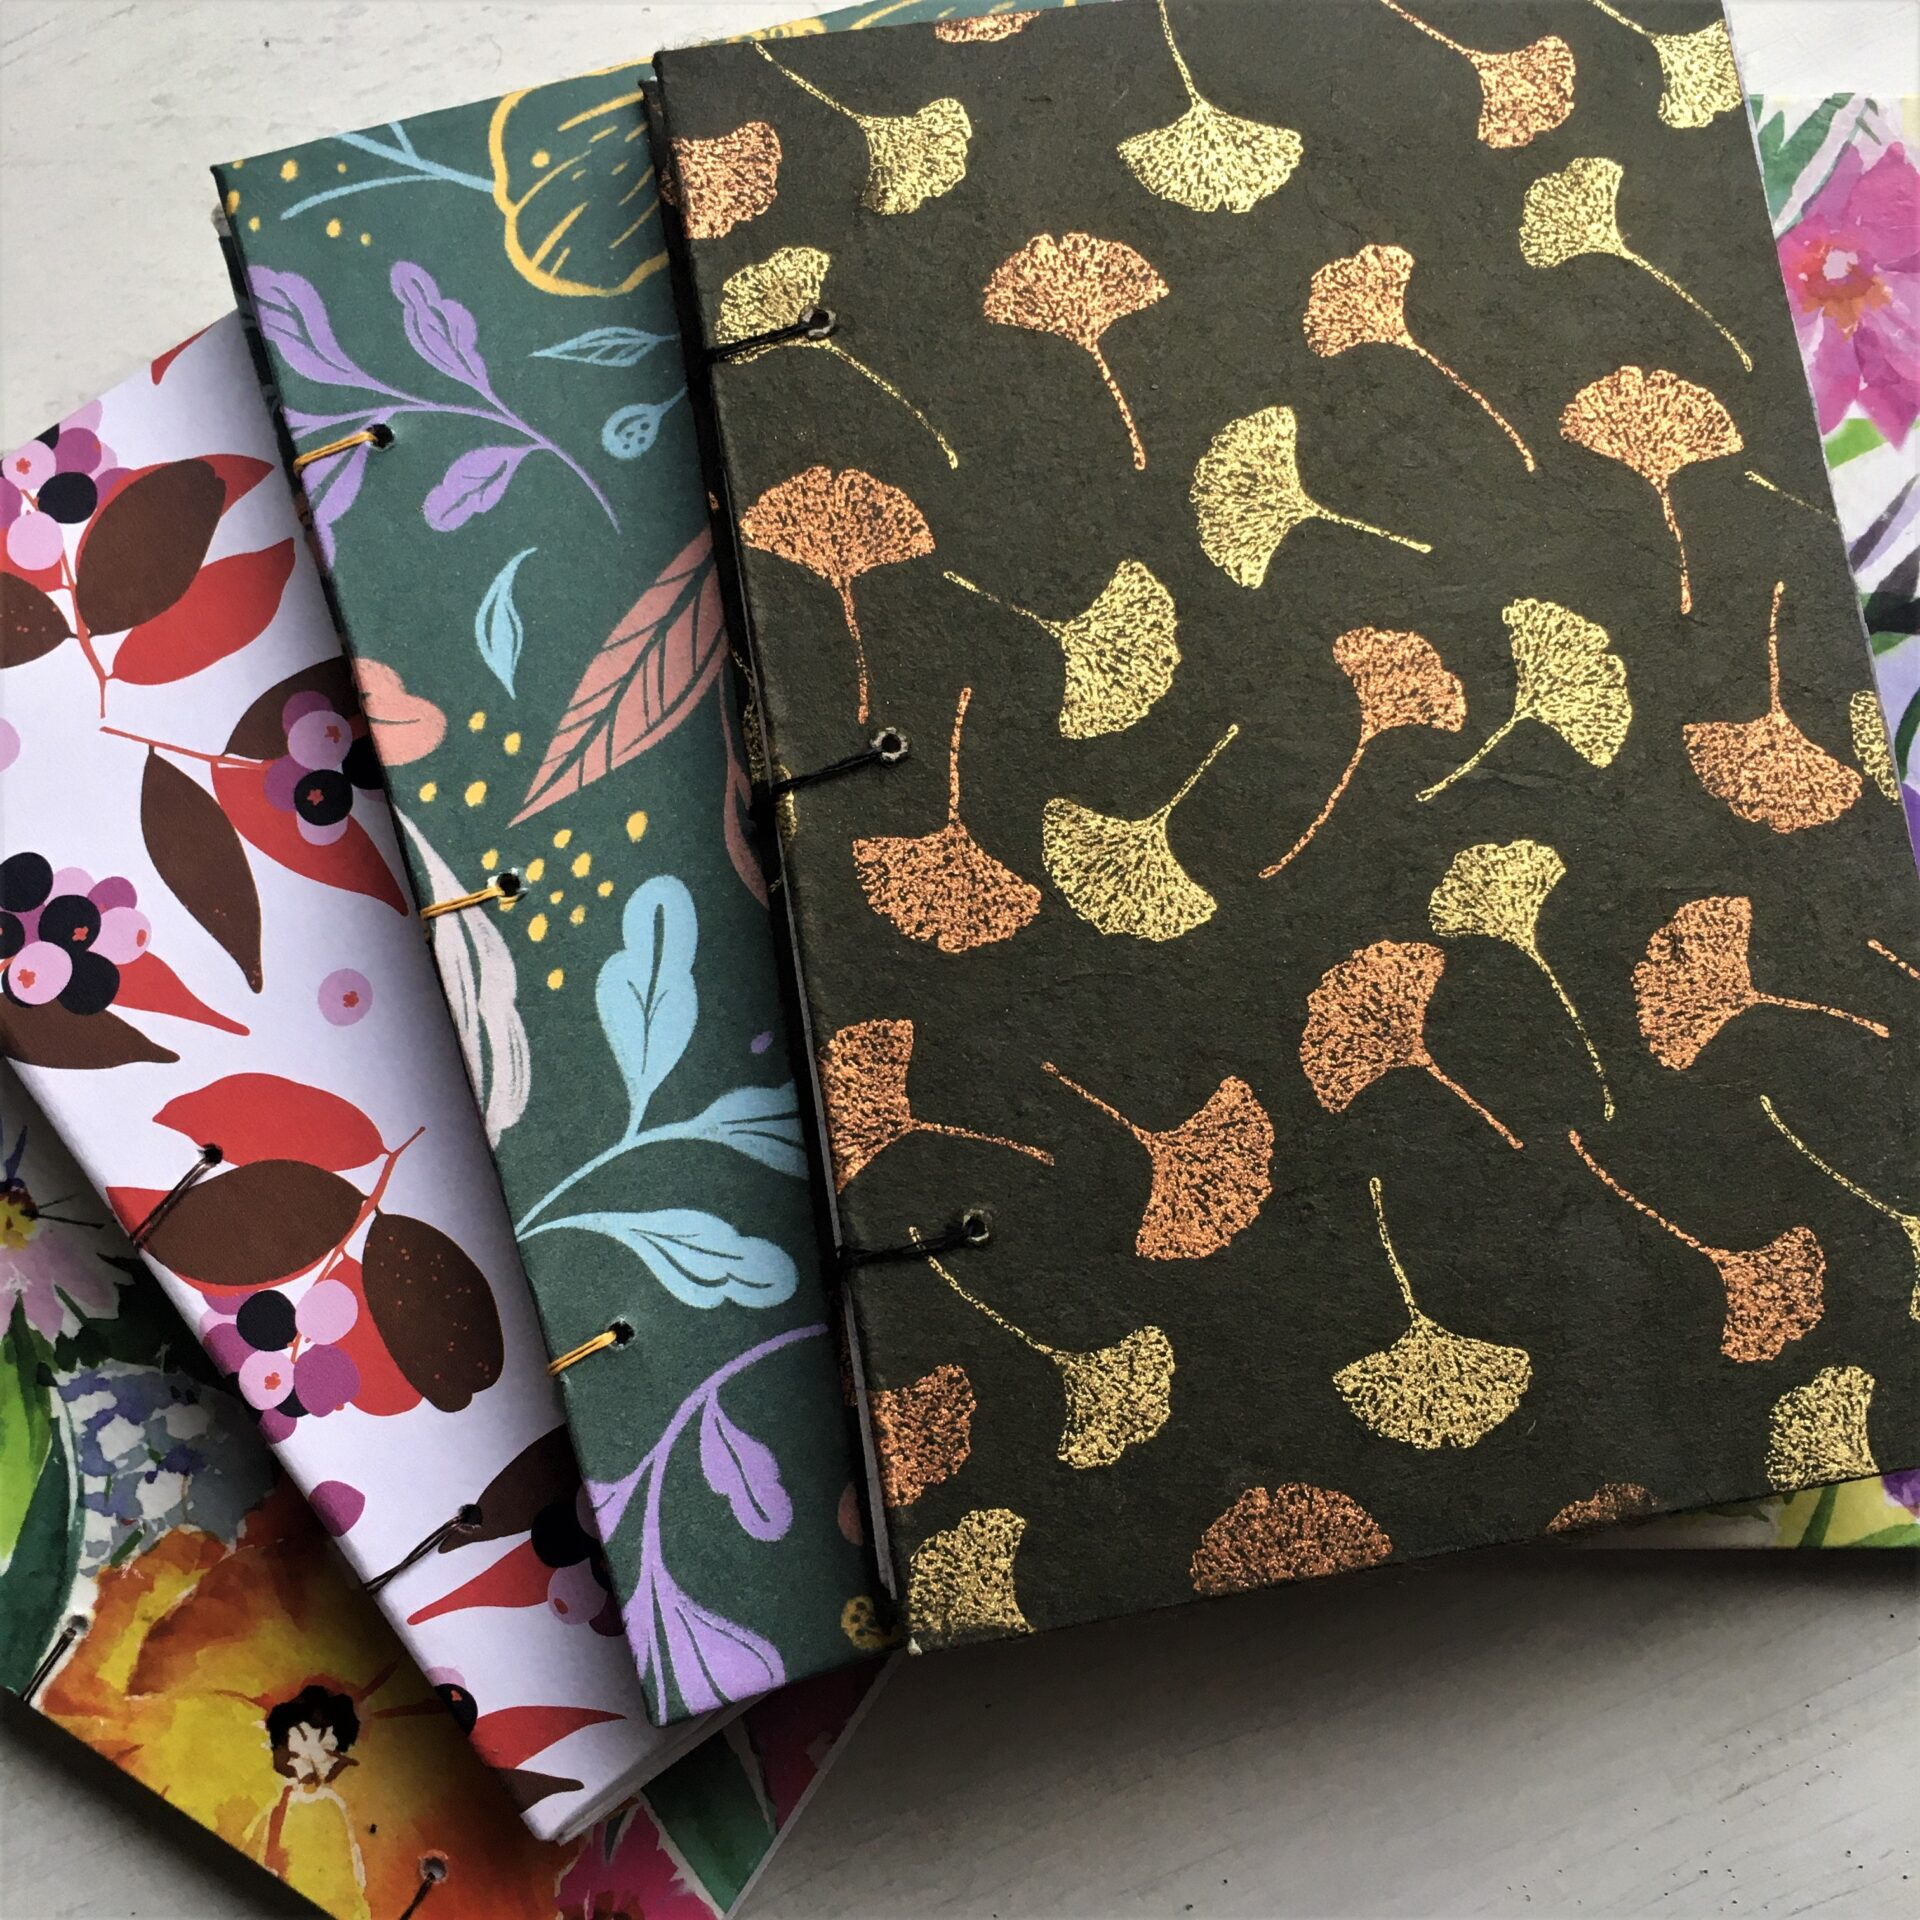 Books By Jena Oakford (Home Exhibition)